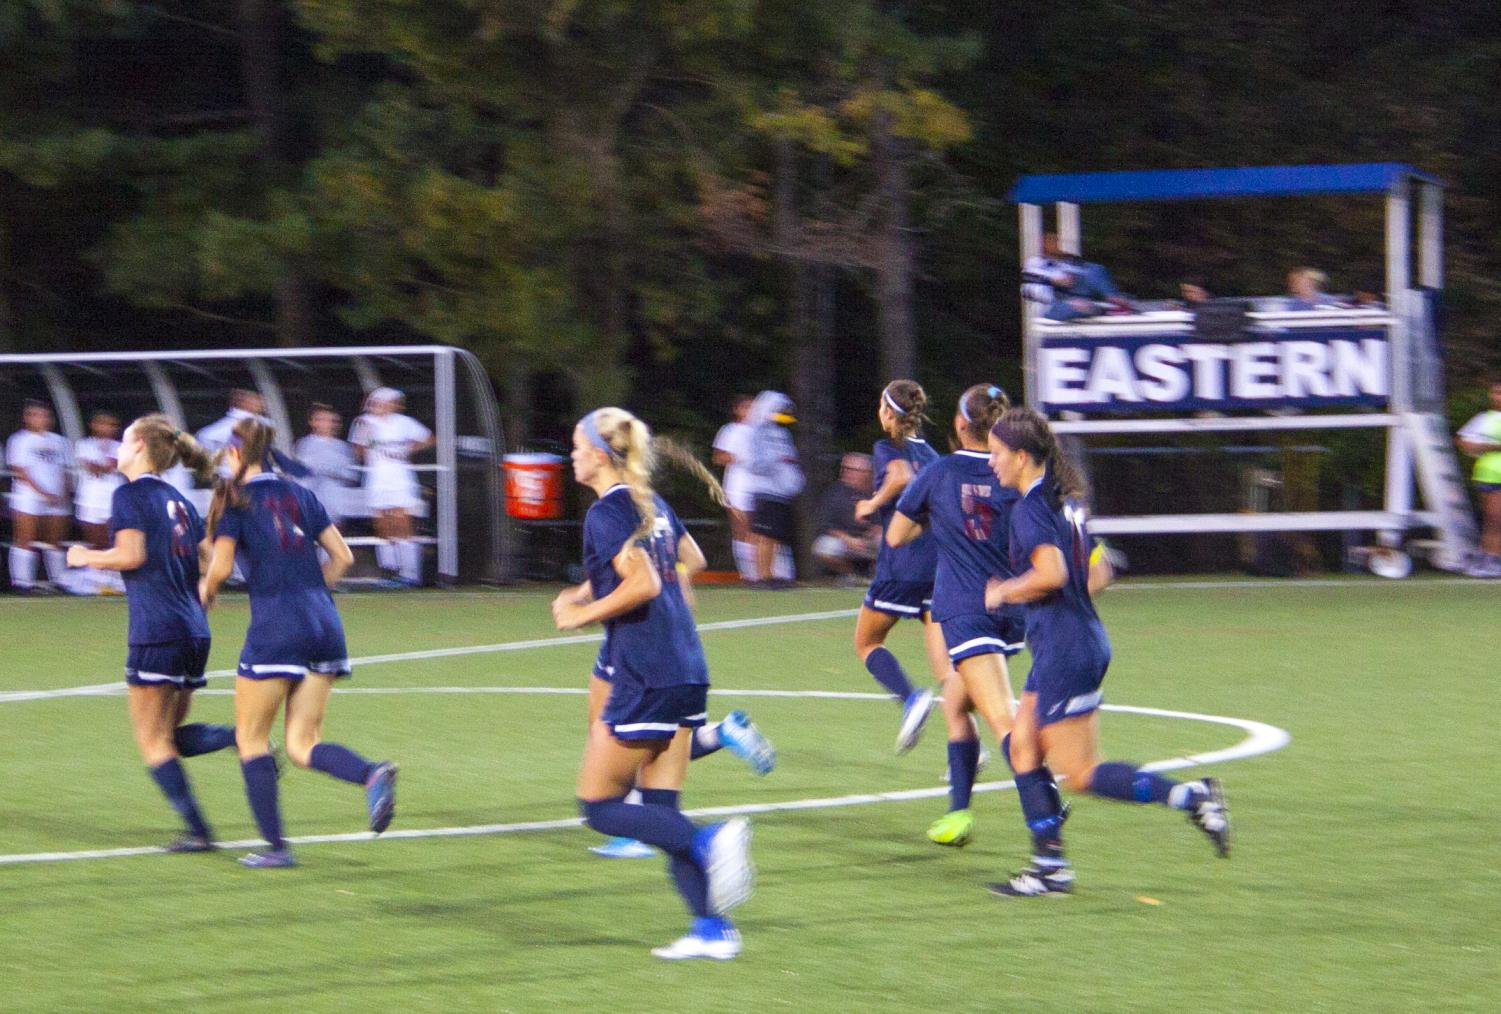 Captain Riley Tiernan and the stars of the Girls Soccer team return to midfield following a goal.